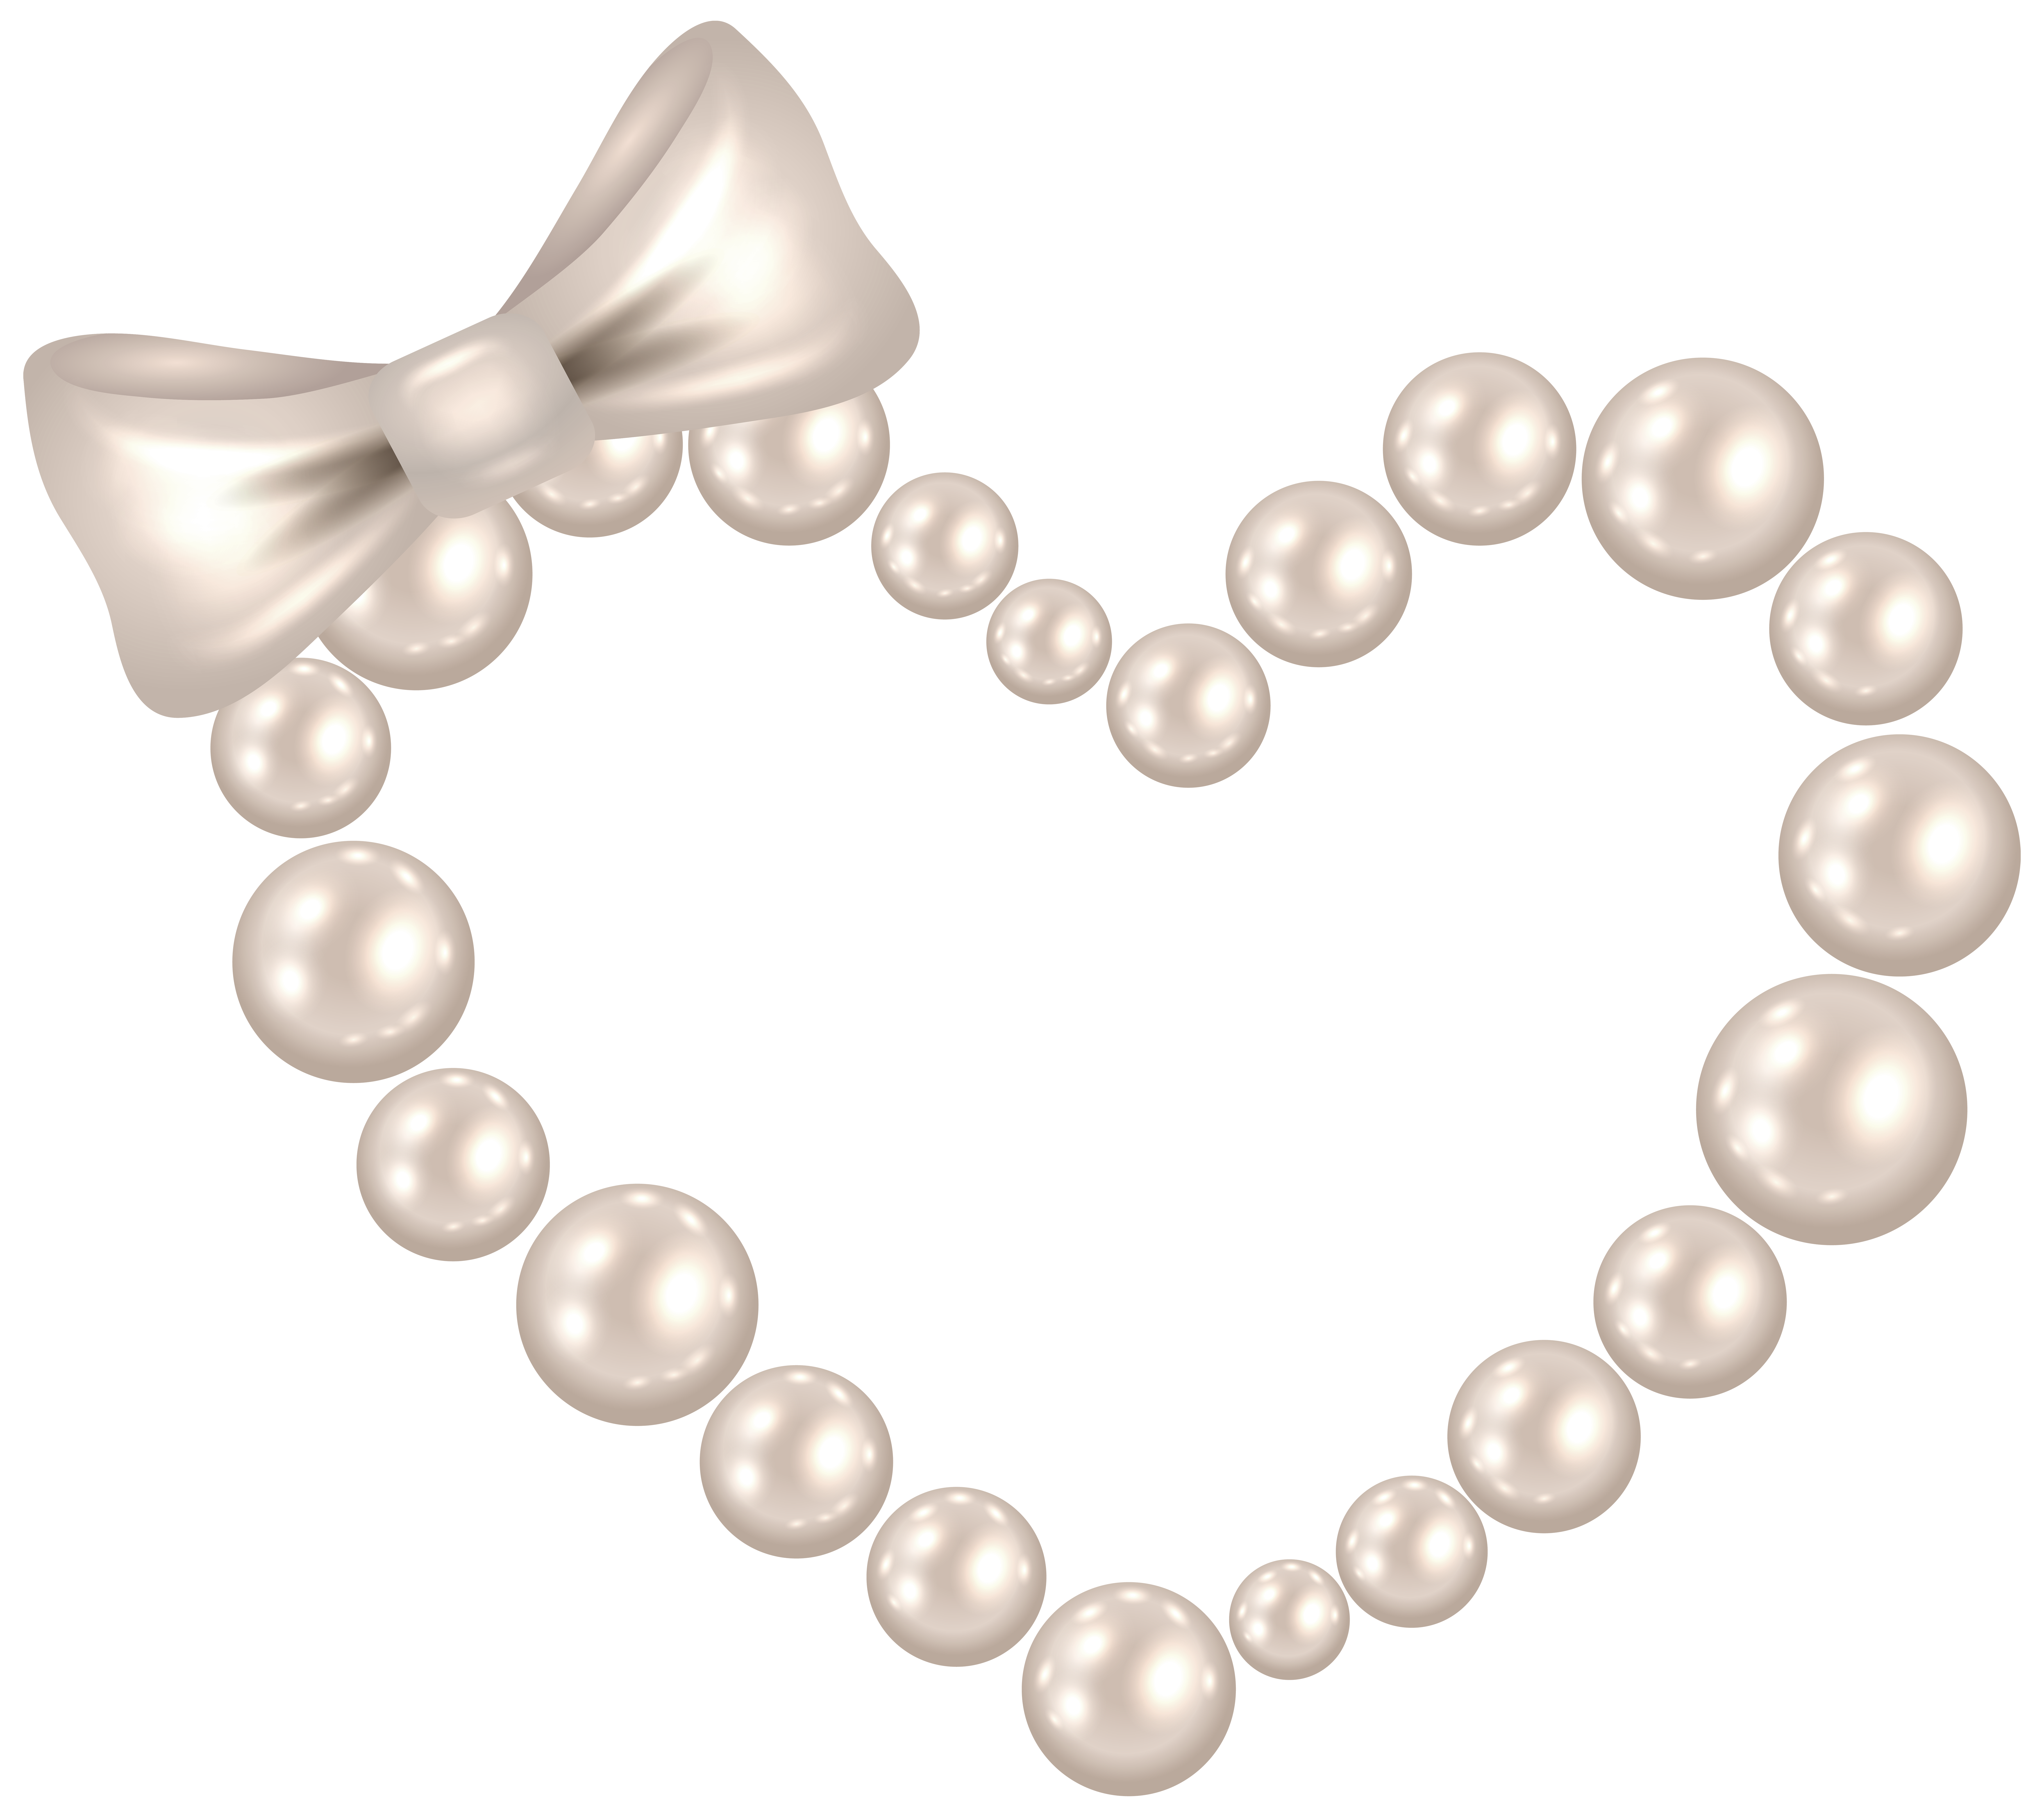 Pearl crown cartoon clipart clip art free library Pearl Heart with Bow Transparent PNG Clip Art Image | CLIPART AND ... clip art free library